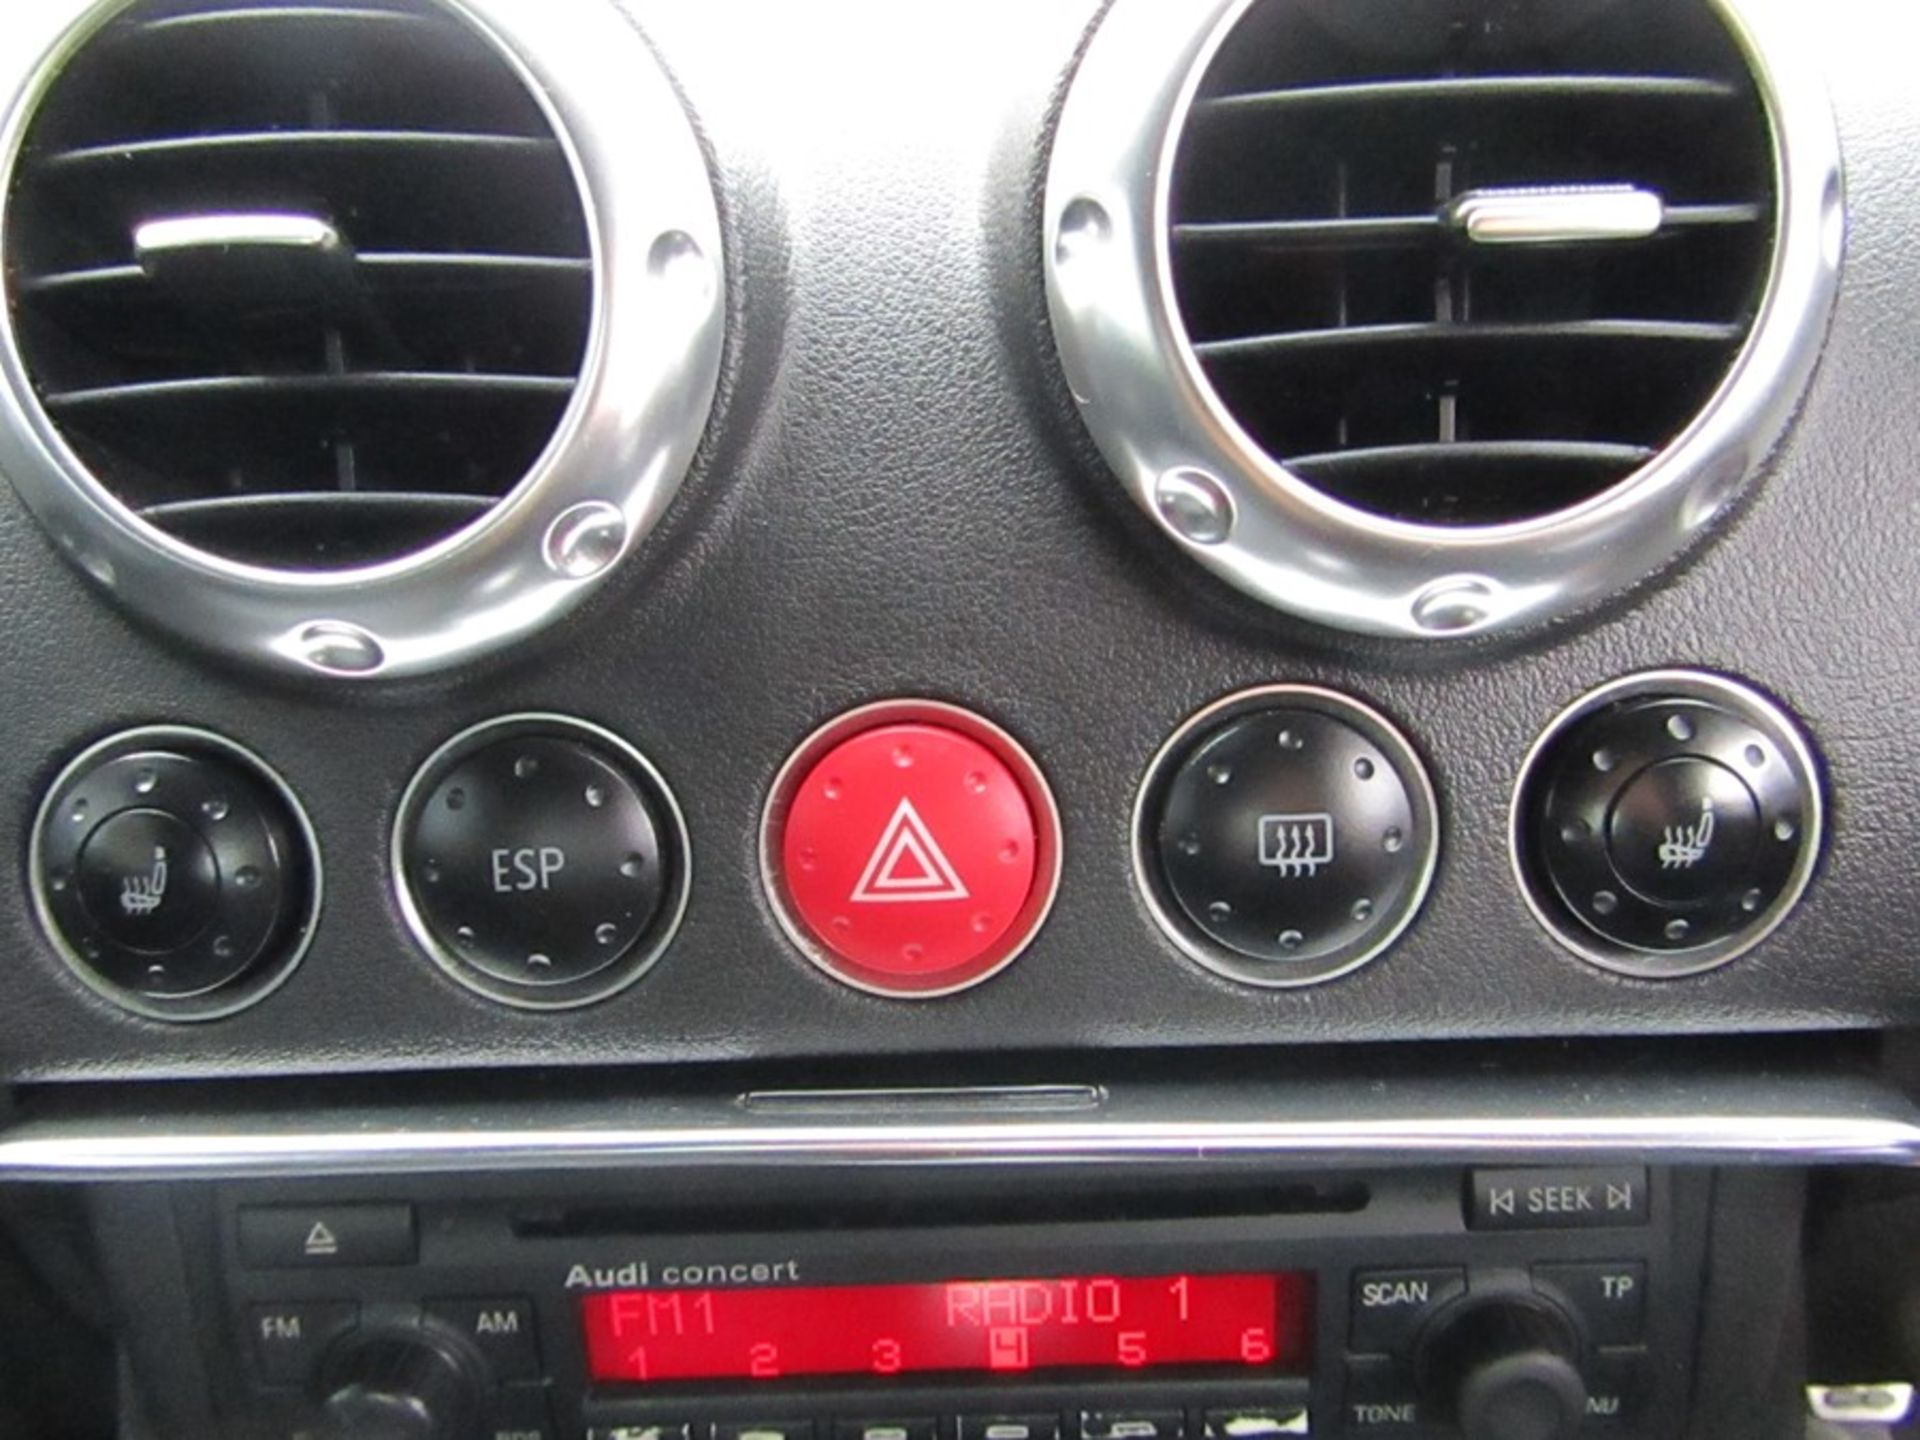 2005 Audi 1.8i Convertible roadster, 131,608 Miles (unchecked) MOT until 01/06/2021, Has part - Image 11 of 16